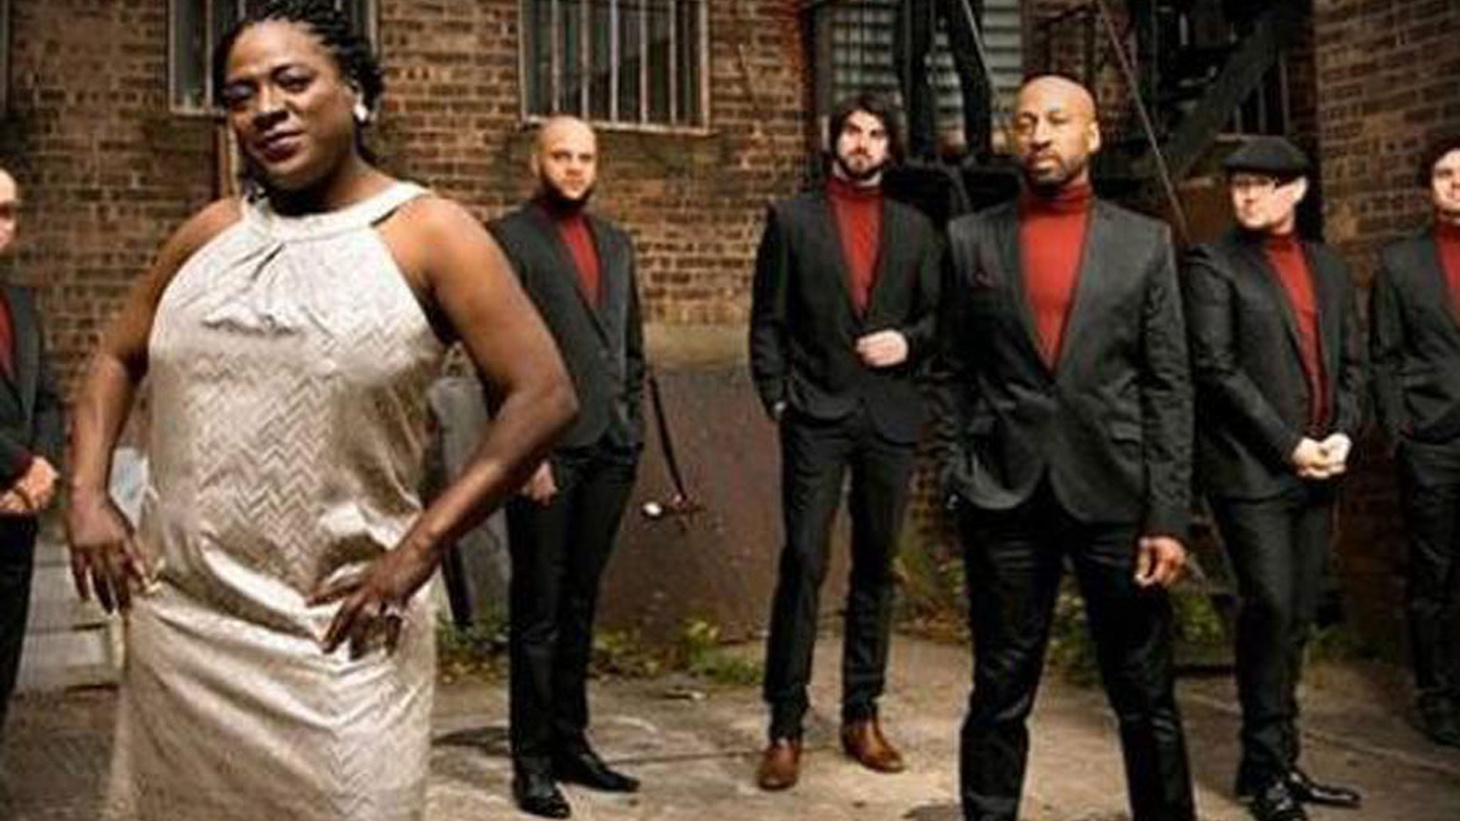 Sharon Jones and the Dap-Kings brings all the soulful, funky goodness you could ever hope for...